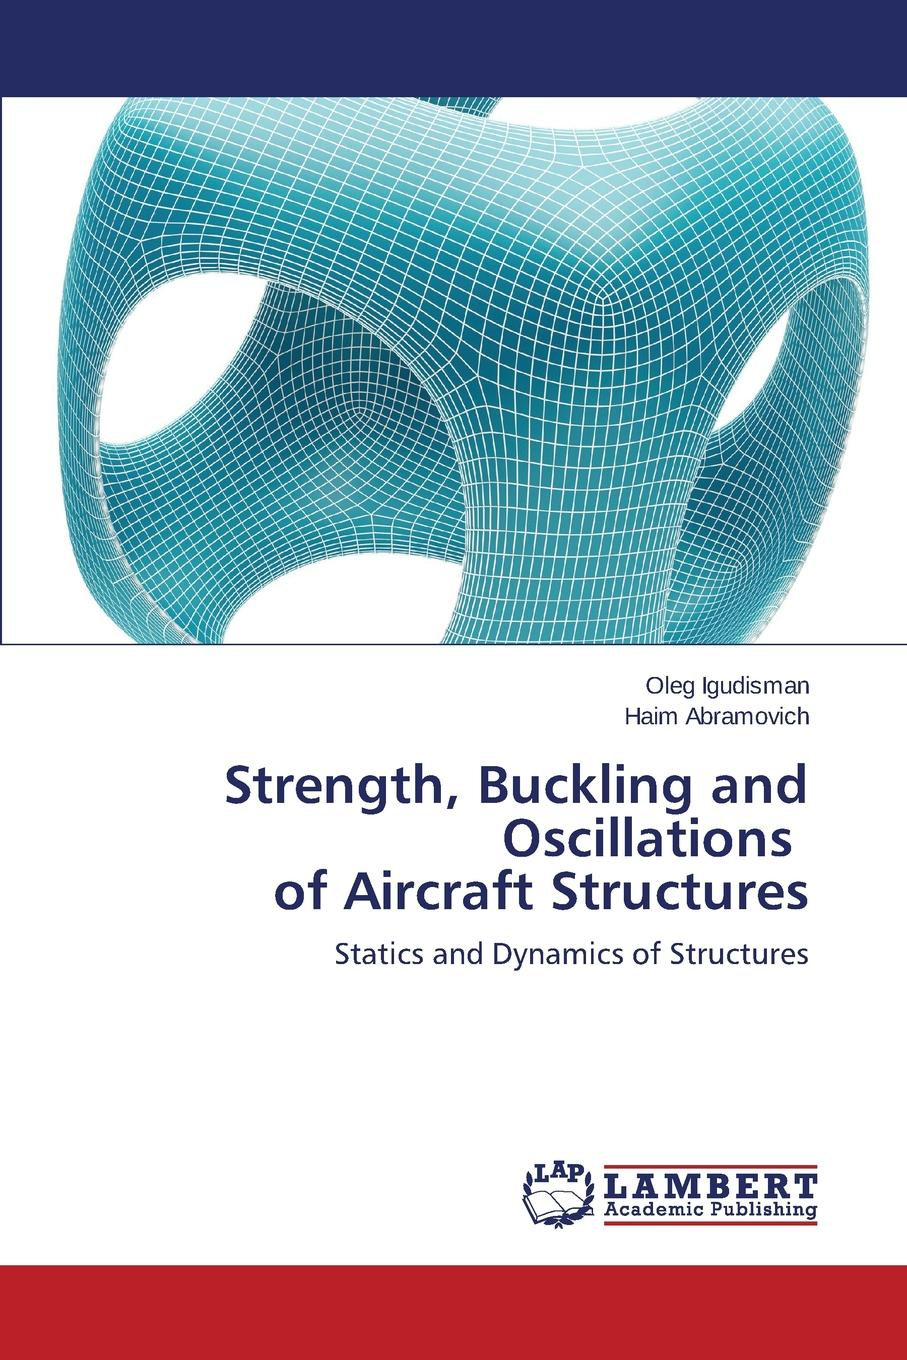 Igudisman Oleg, Abramovich Haim Strength, Buckling and Oscillations of Aircraft Structures rcc and composite structures